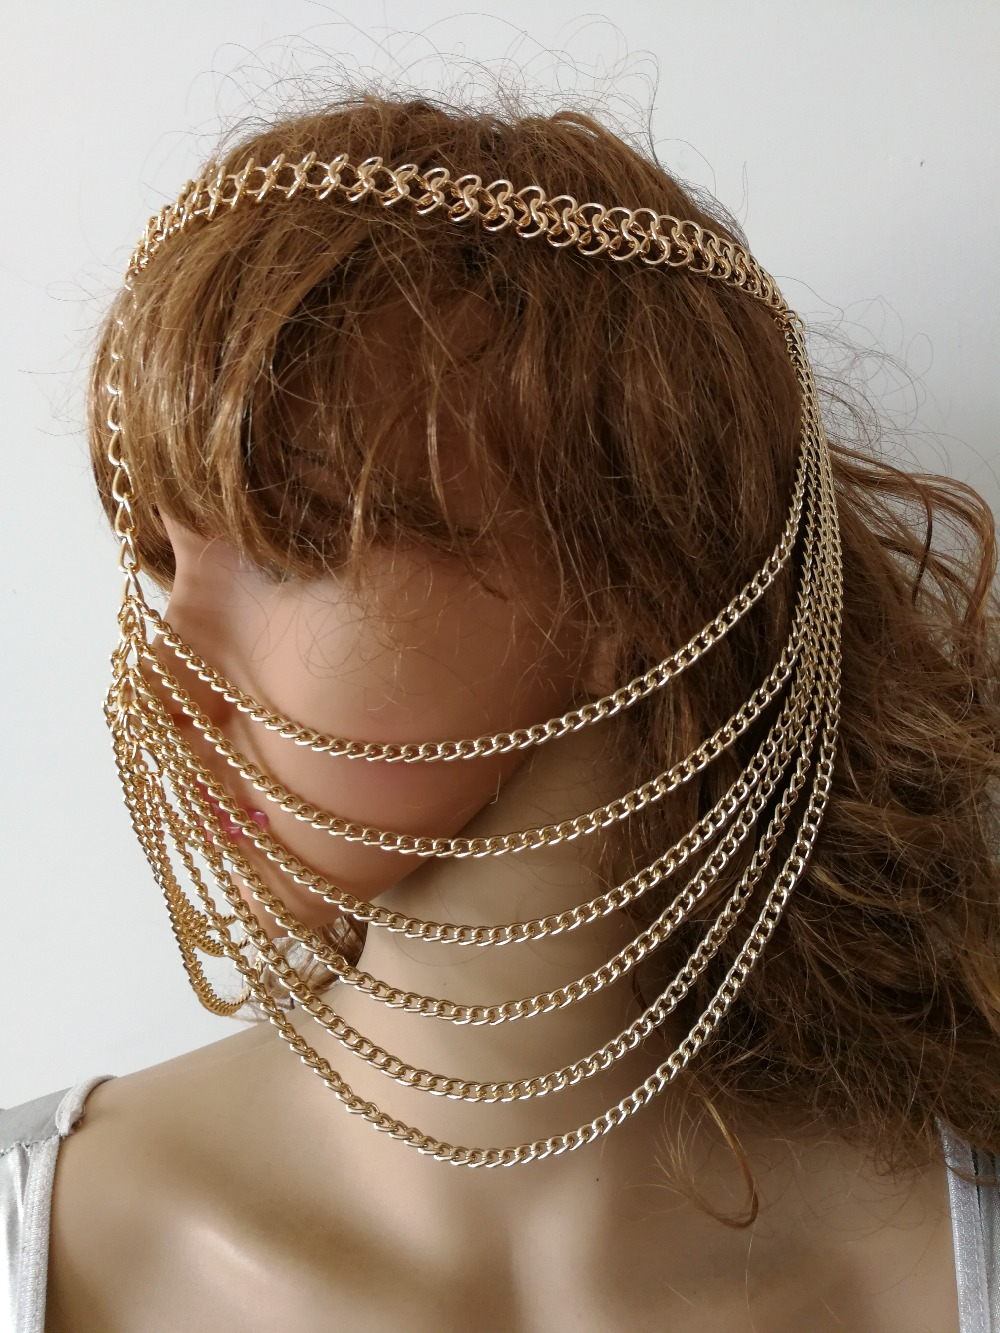 NEW STYLE H774 Women Rock Harness Gold Chains Head Jewelry Unique Design Layers Face Mask Chains Jewelry 3 Colors